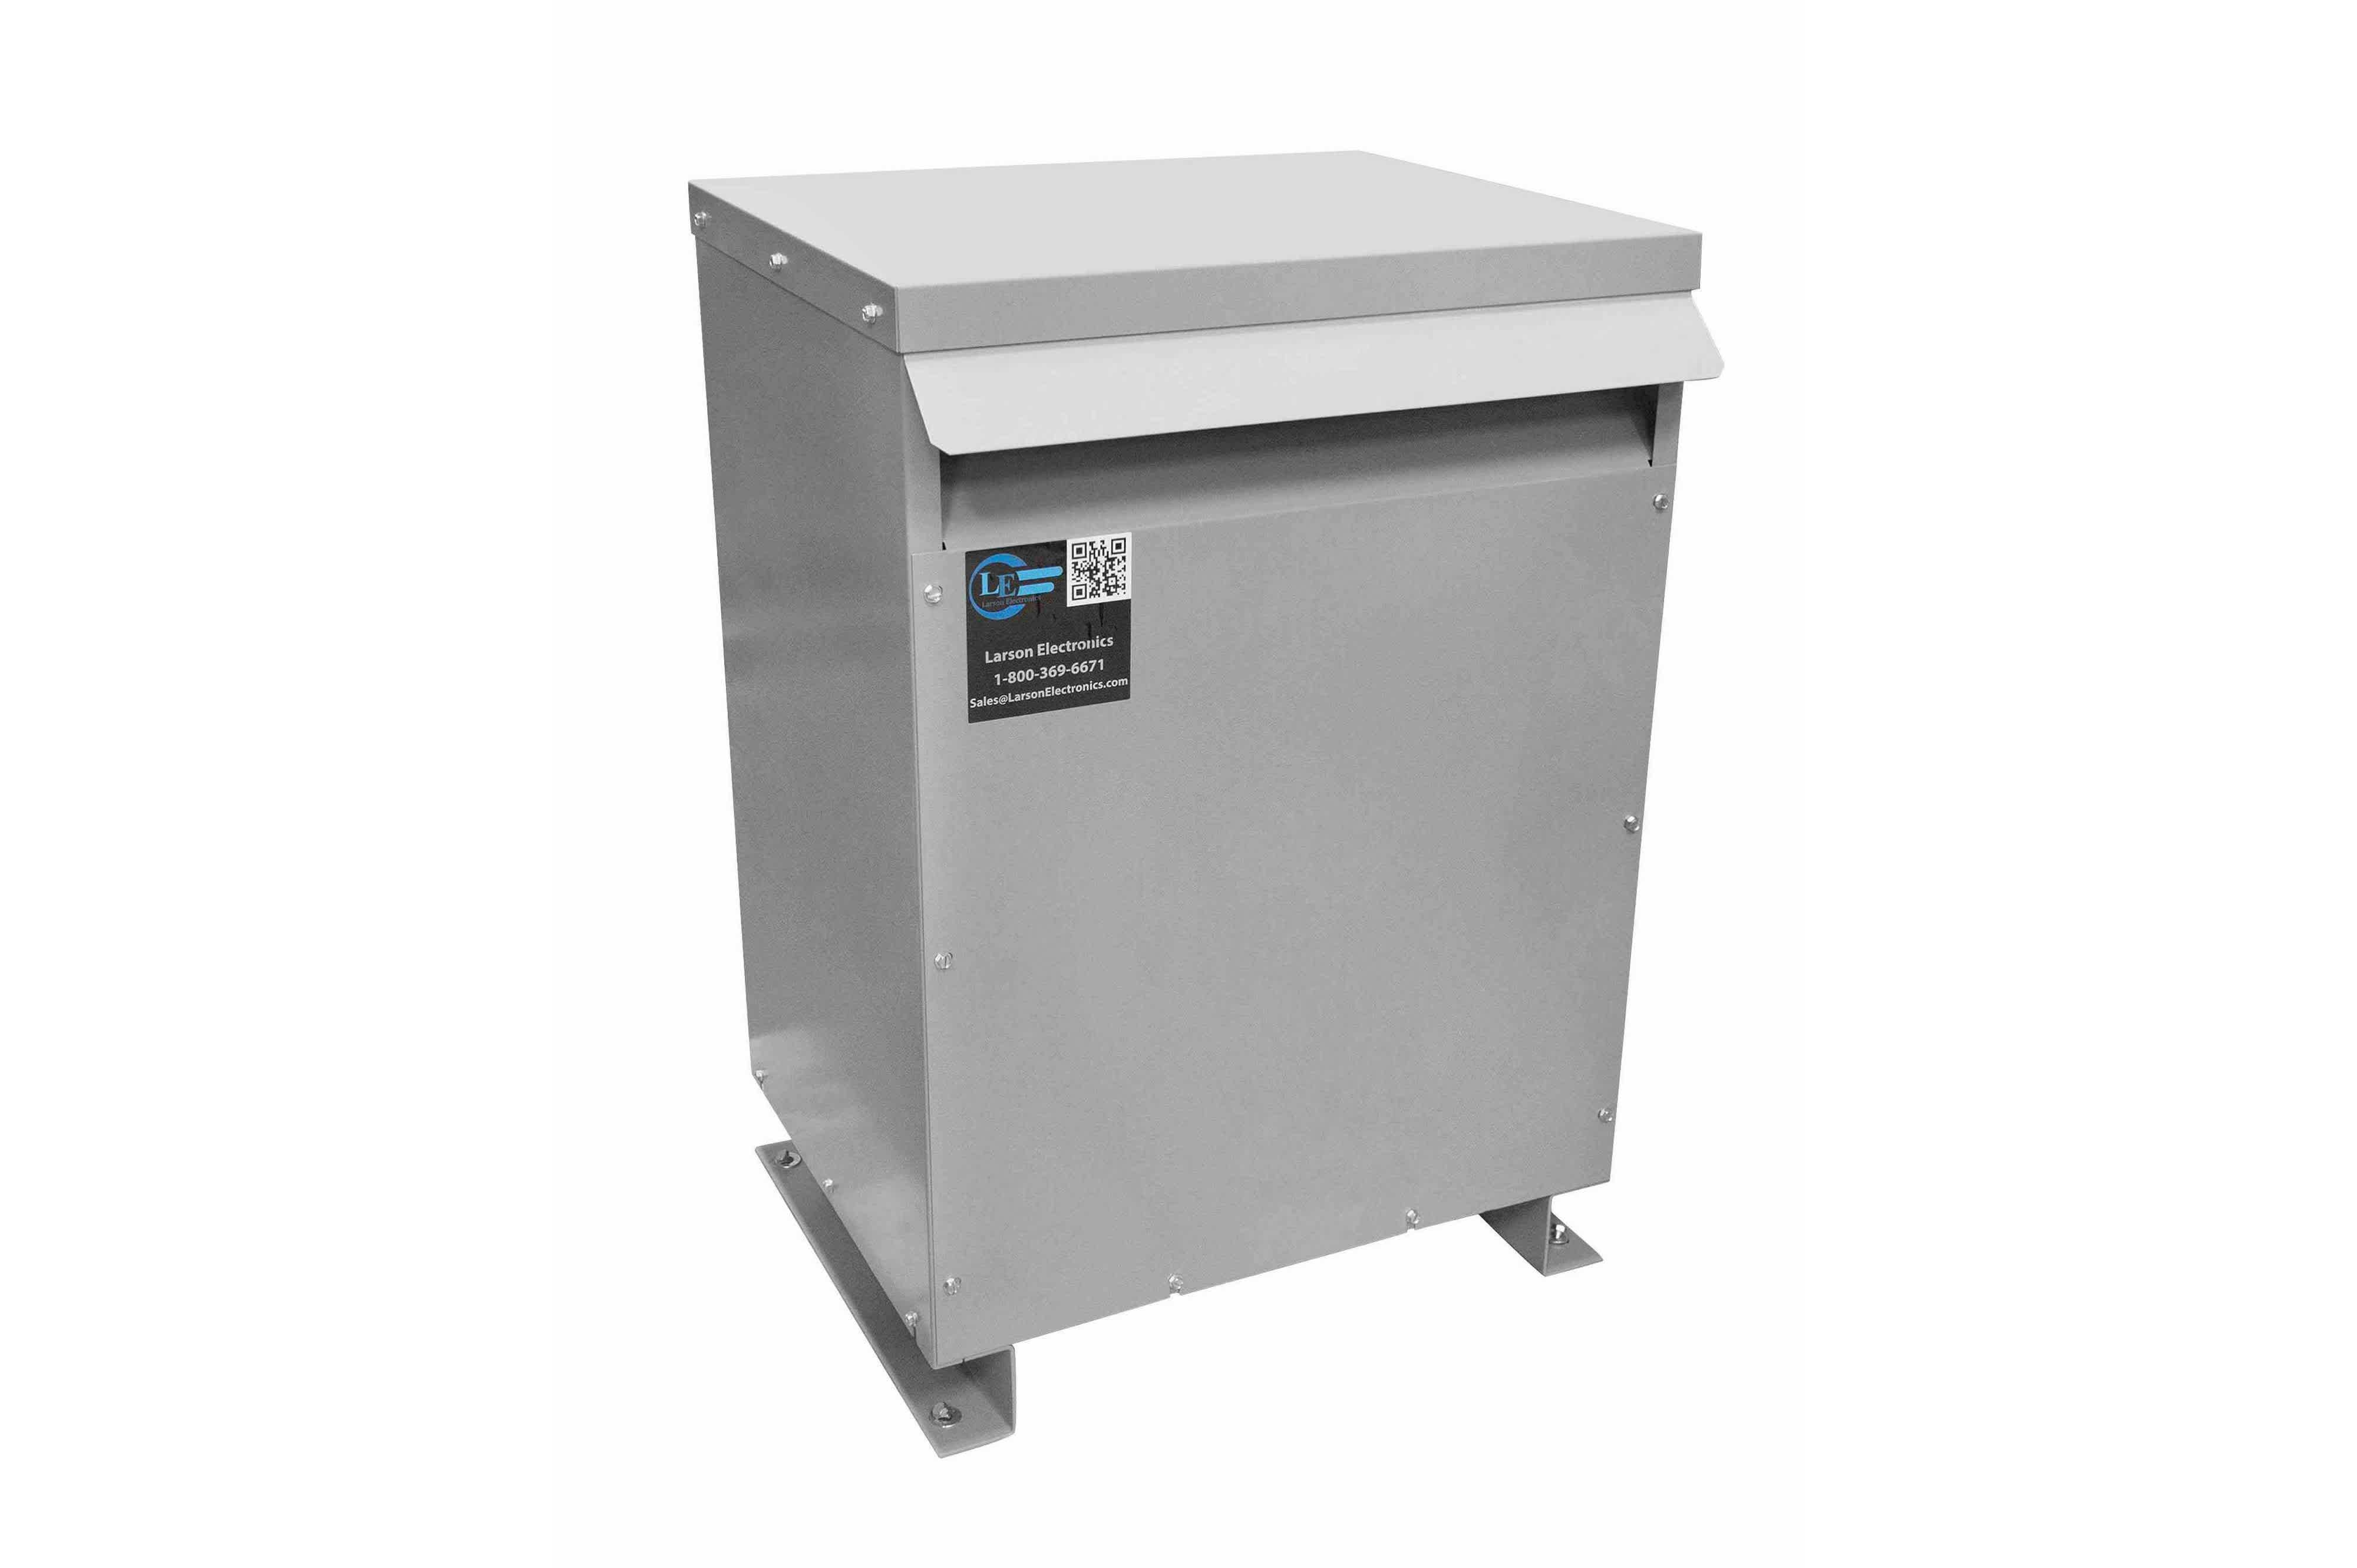 750 kVA 3PH Isolation Transformer, 415V Wye Primary, 600V Delta Secondary, N3R, Ventilated, 60 Hz